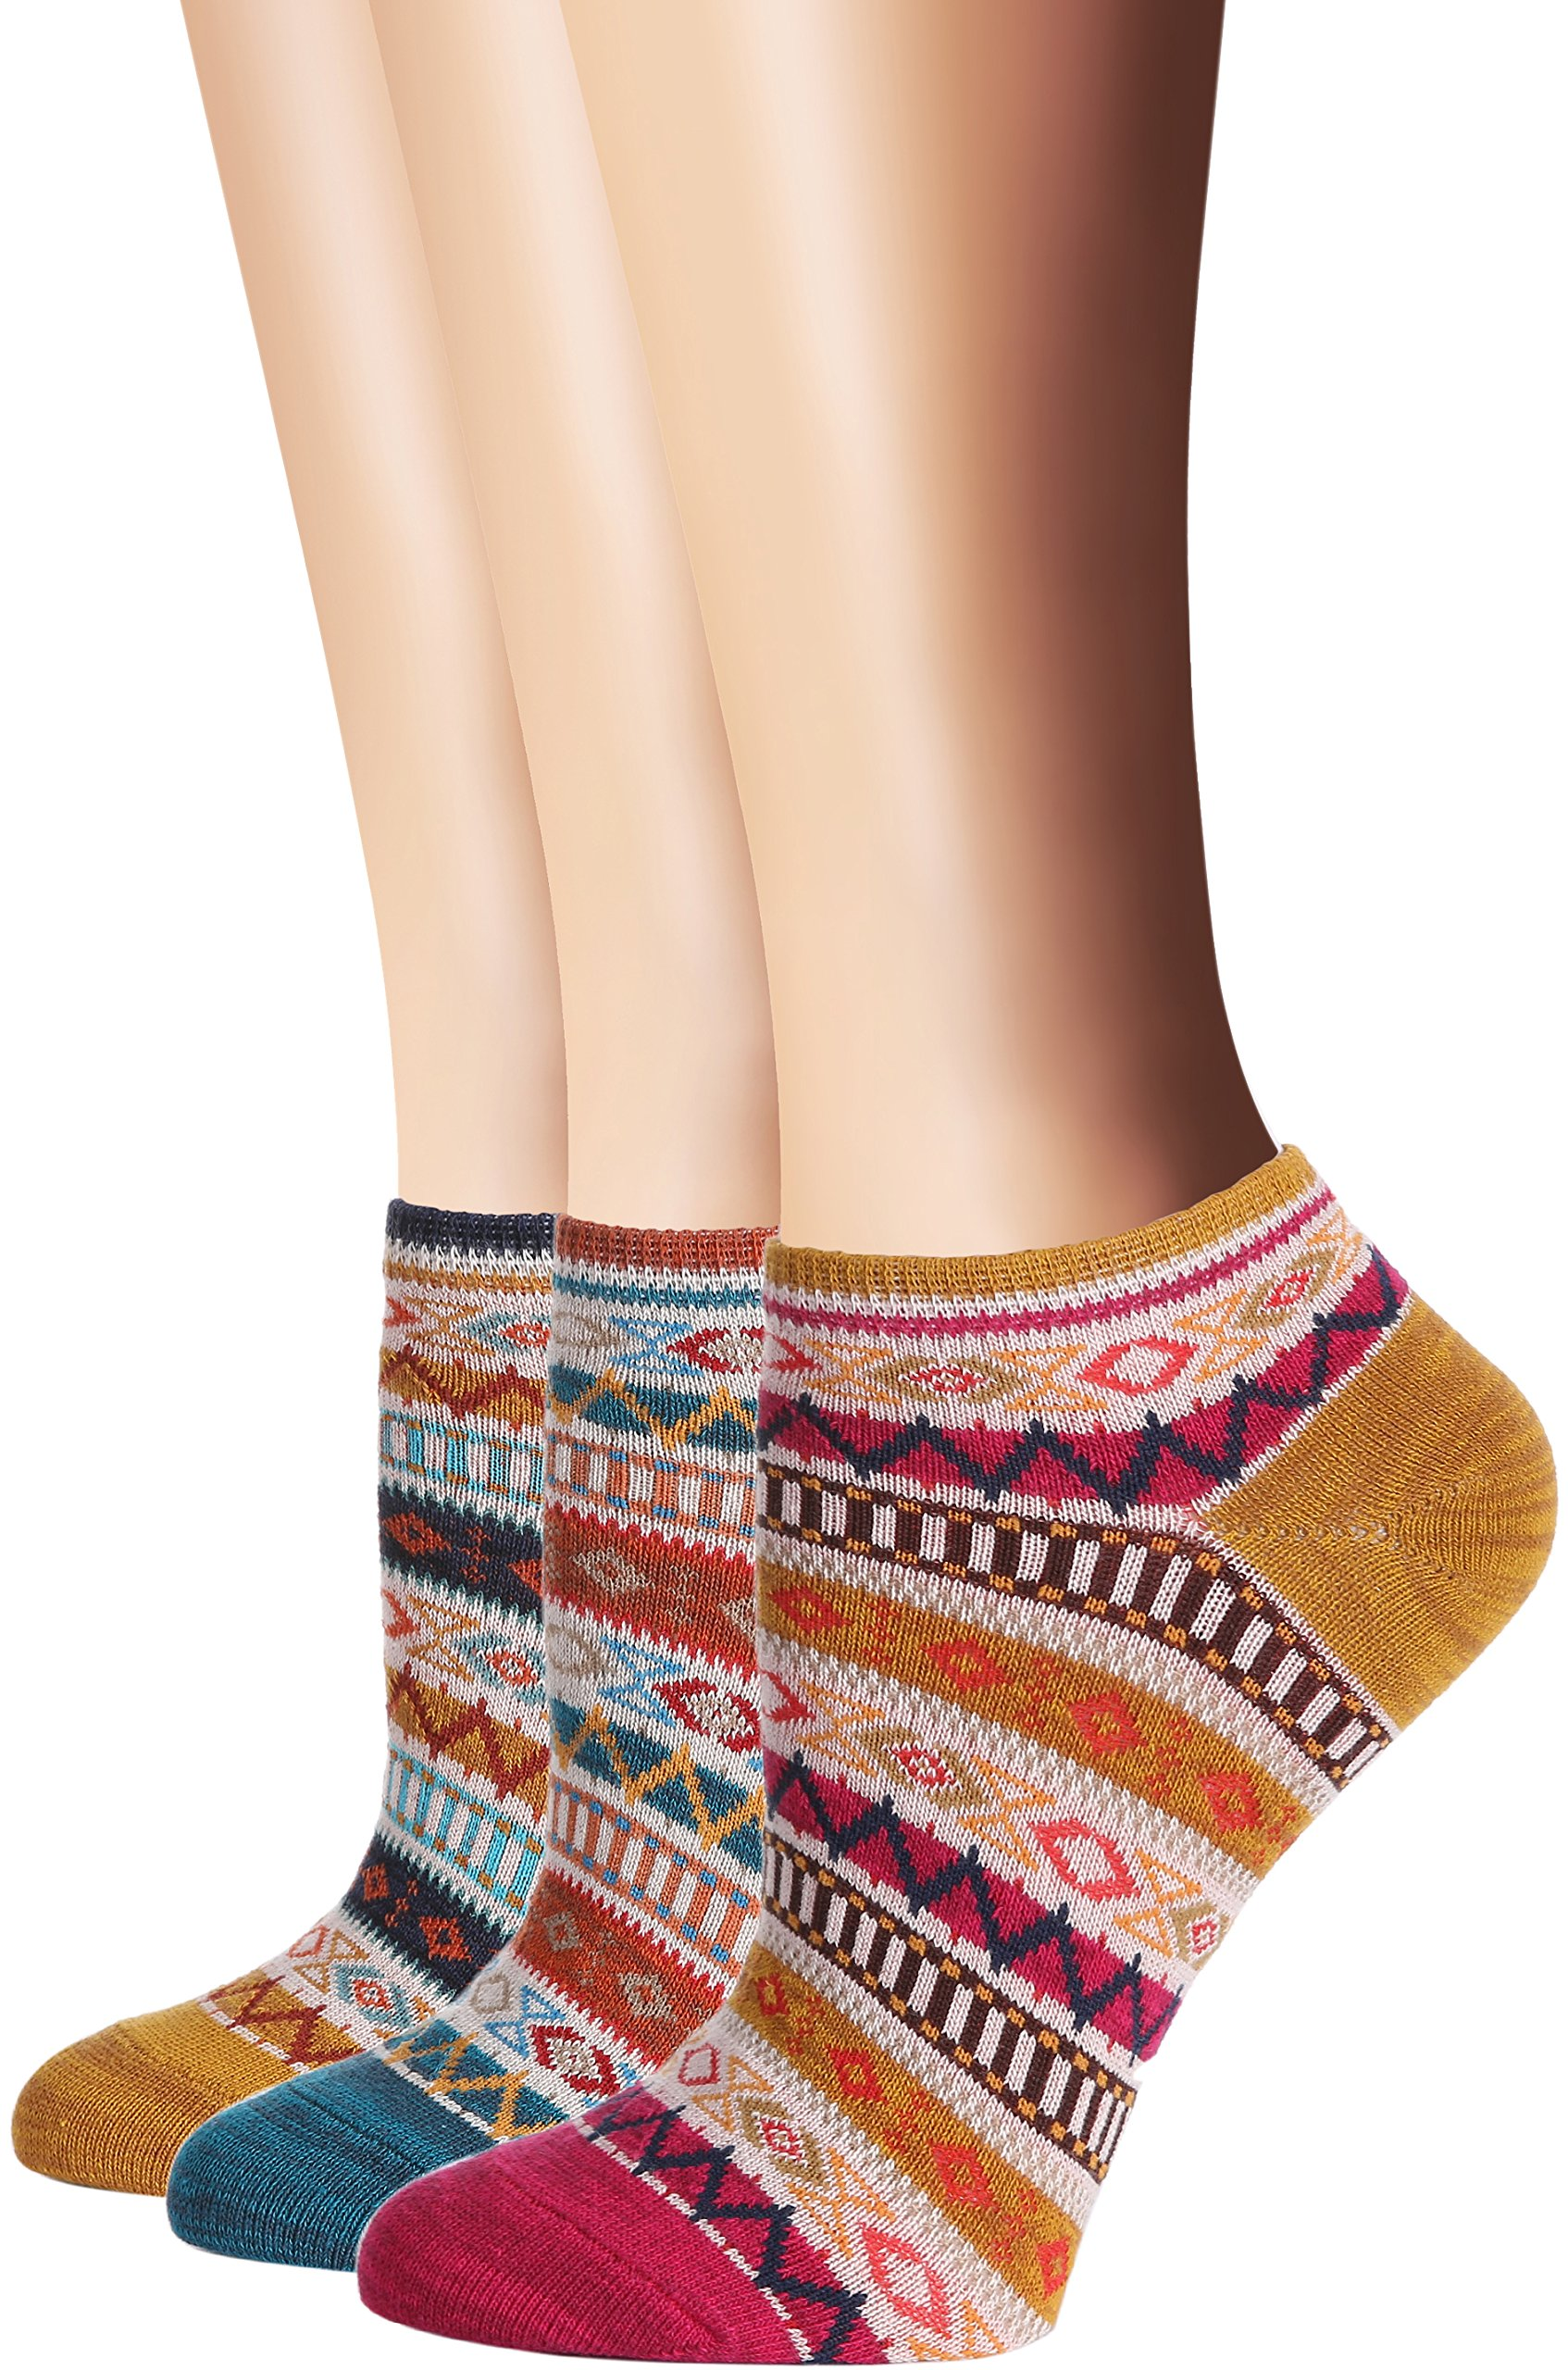 Flora&Fred Women's 3 Pair Pack Vintage Style Patchwork Cotton No Show Socks